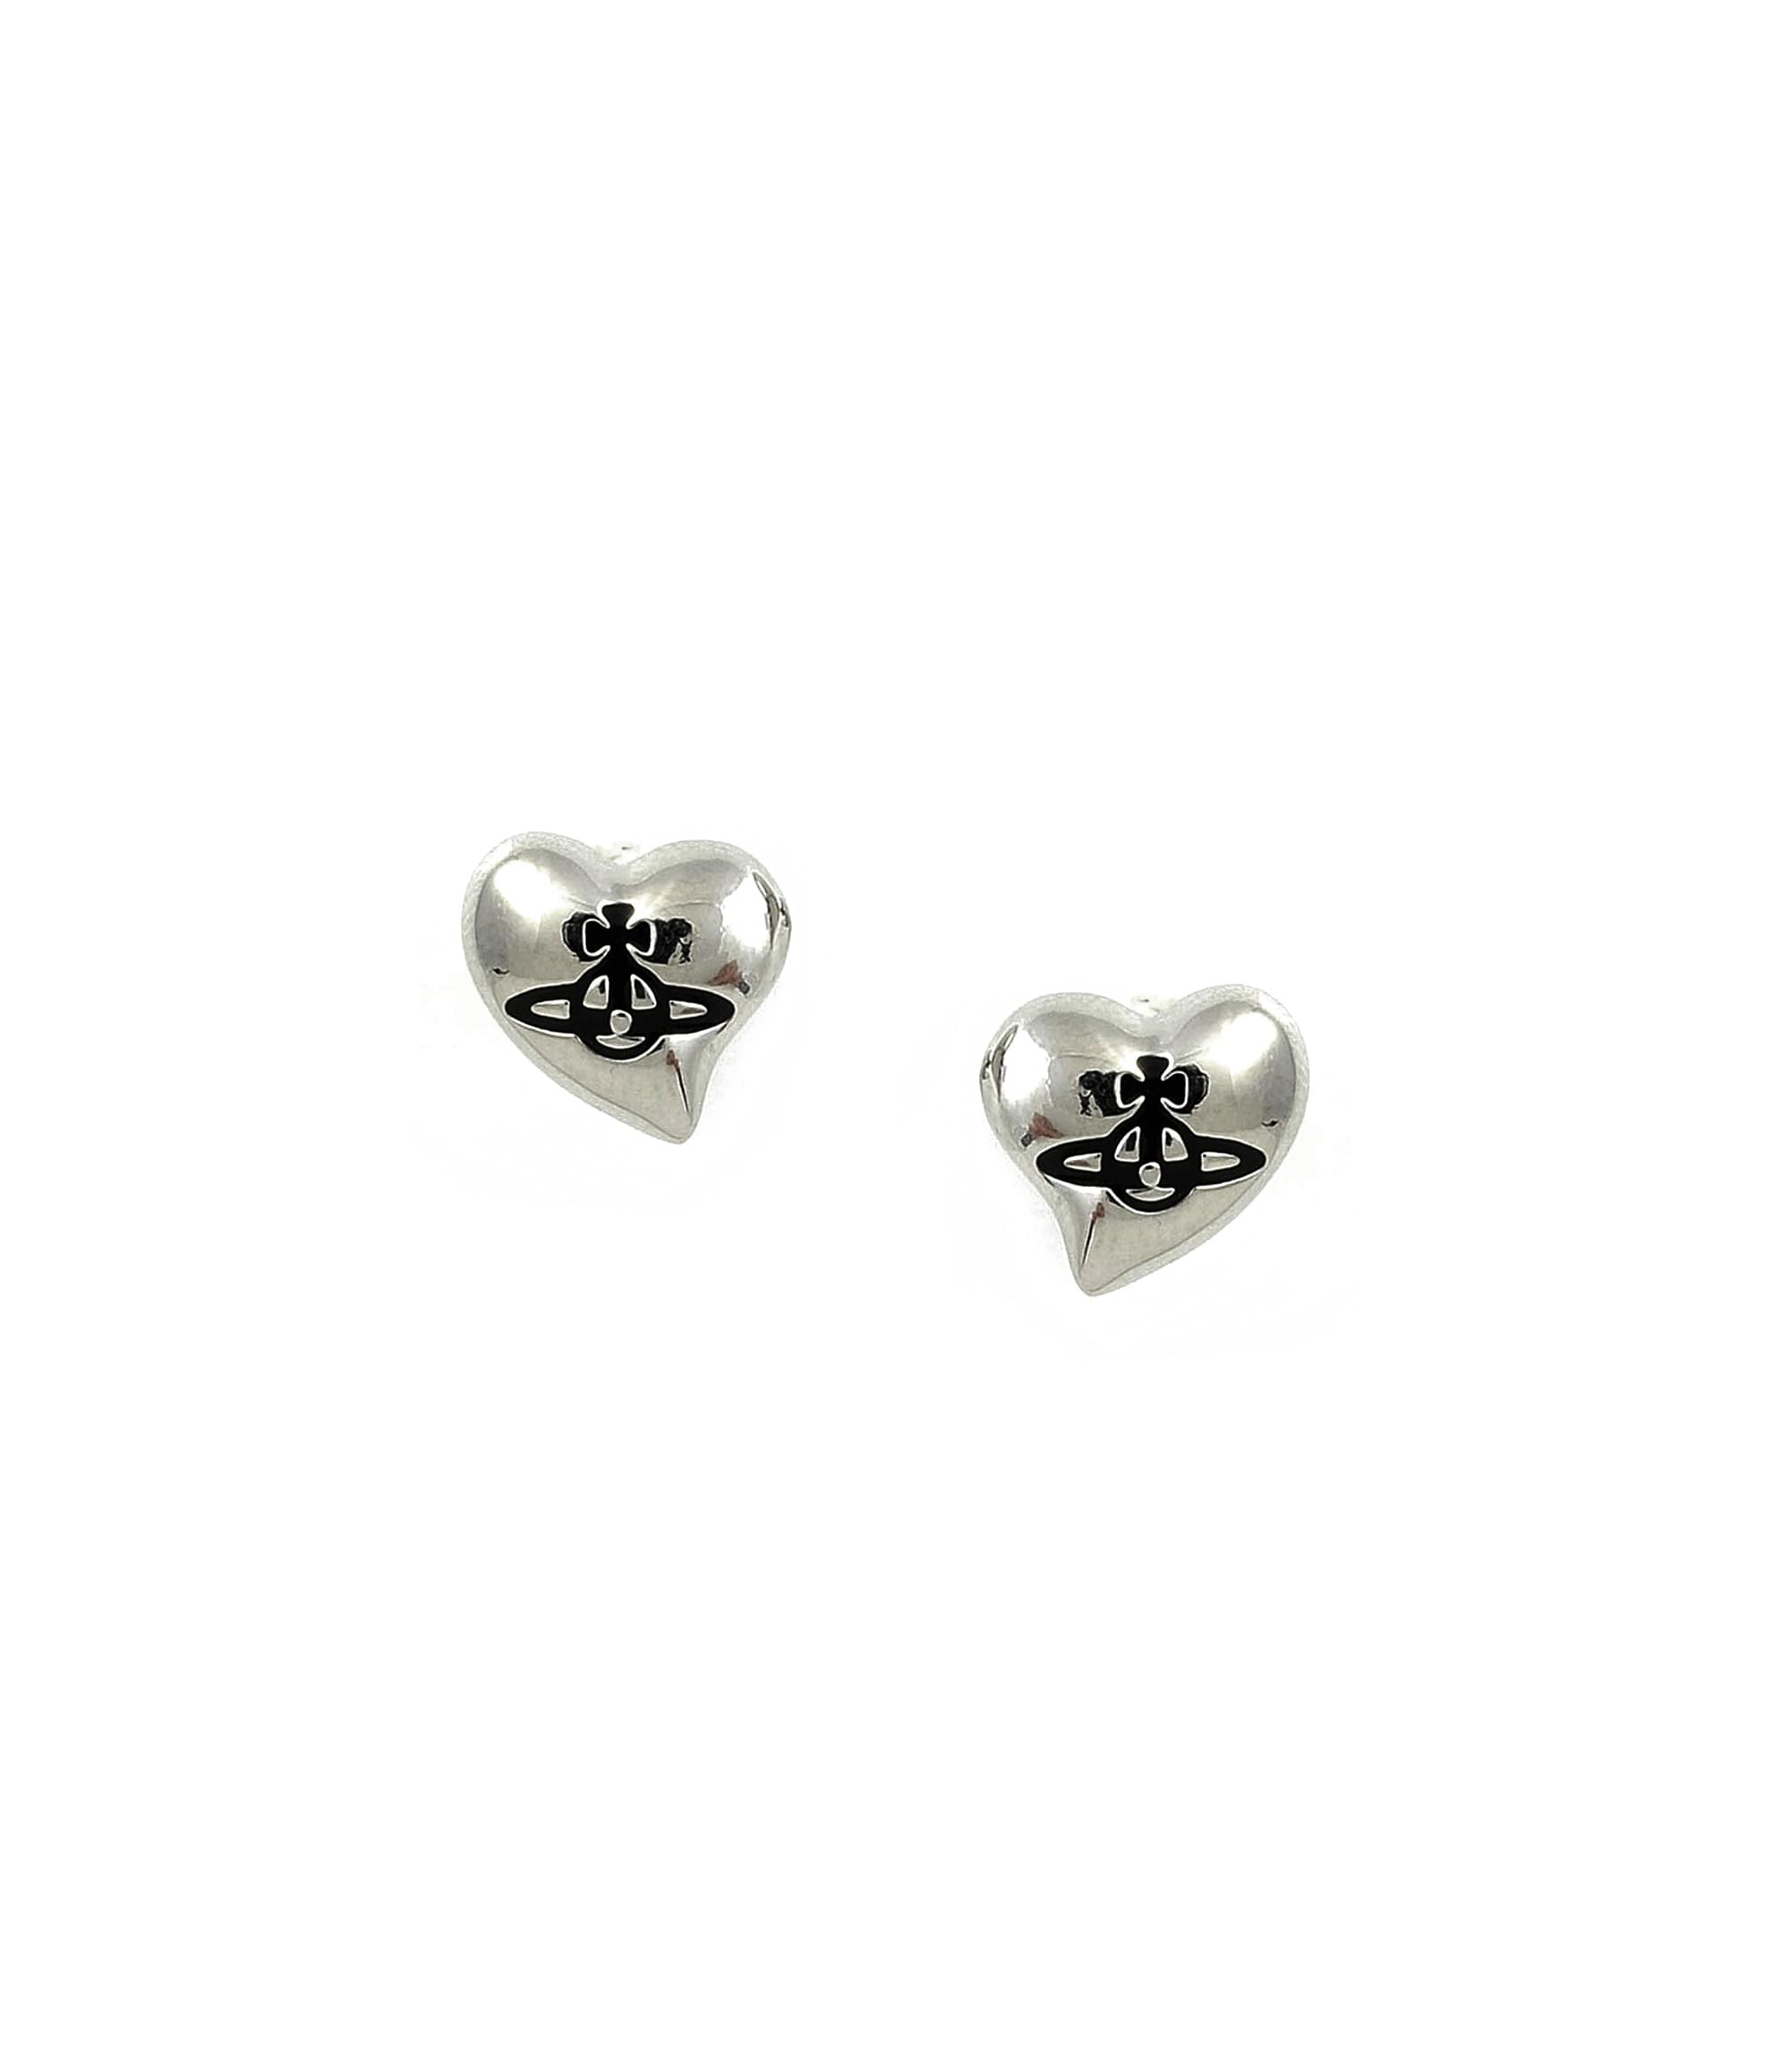 Vivienne Westwood New Heart Stud Earrings